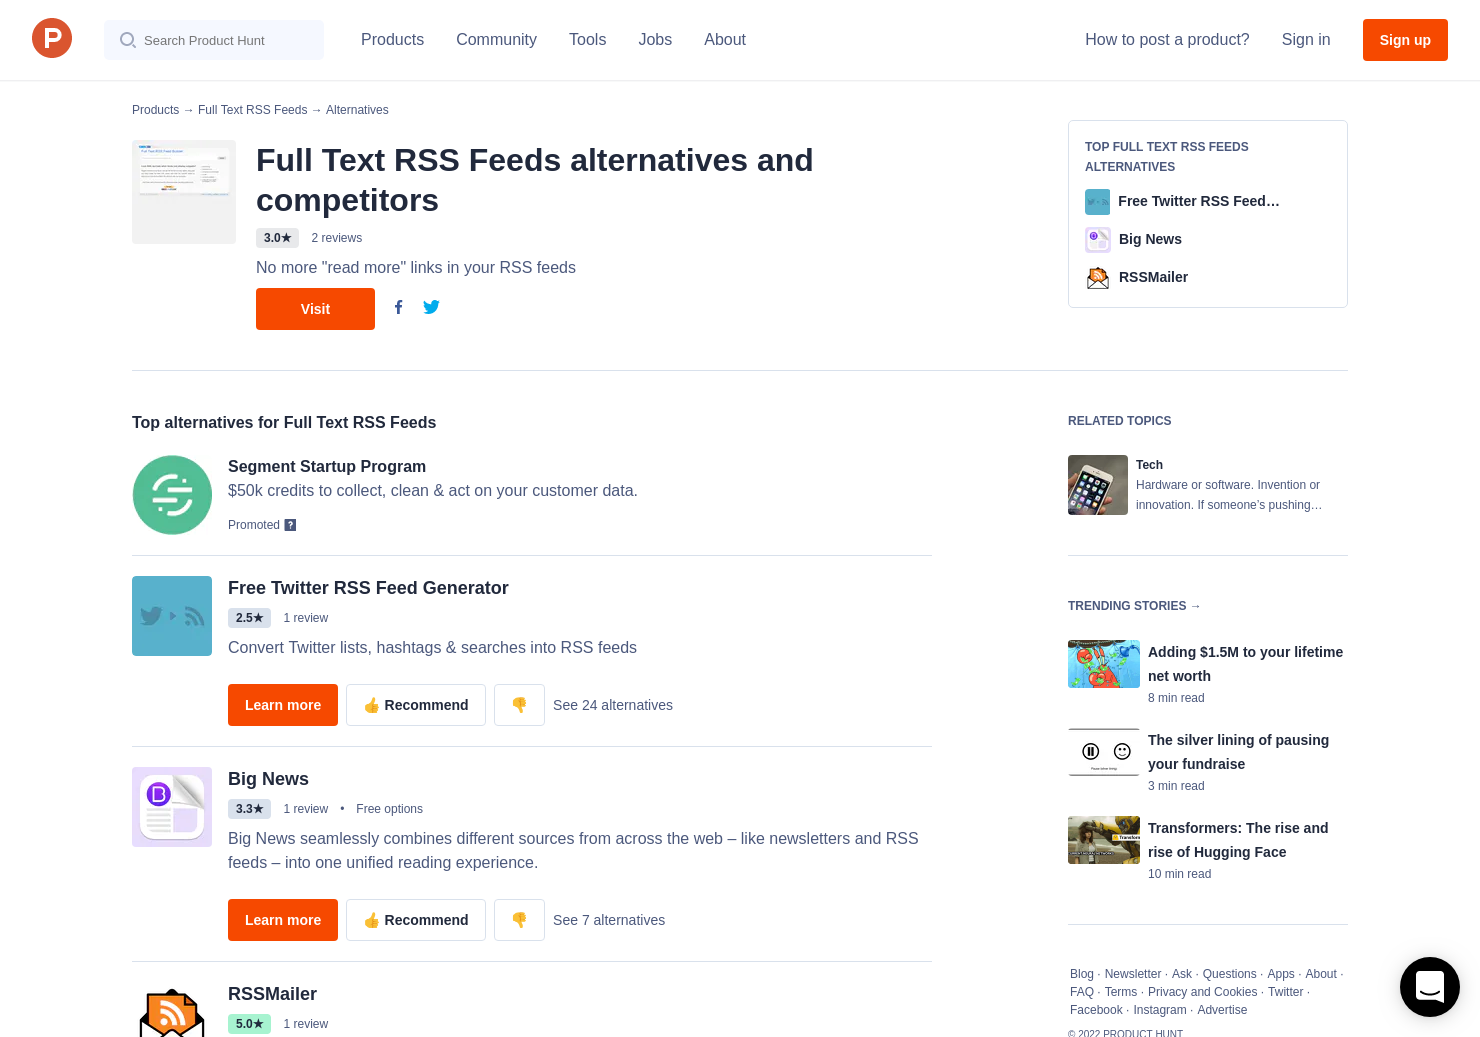 7 Alternatives to Full Text RSS Feeds | Product Hunt